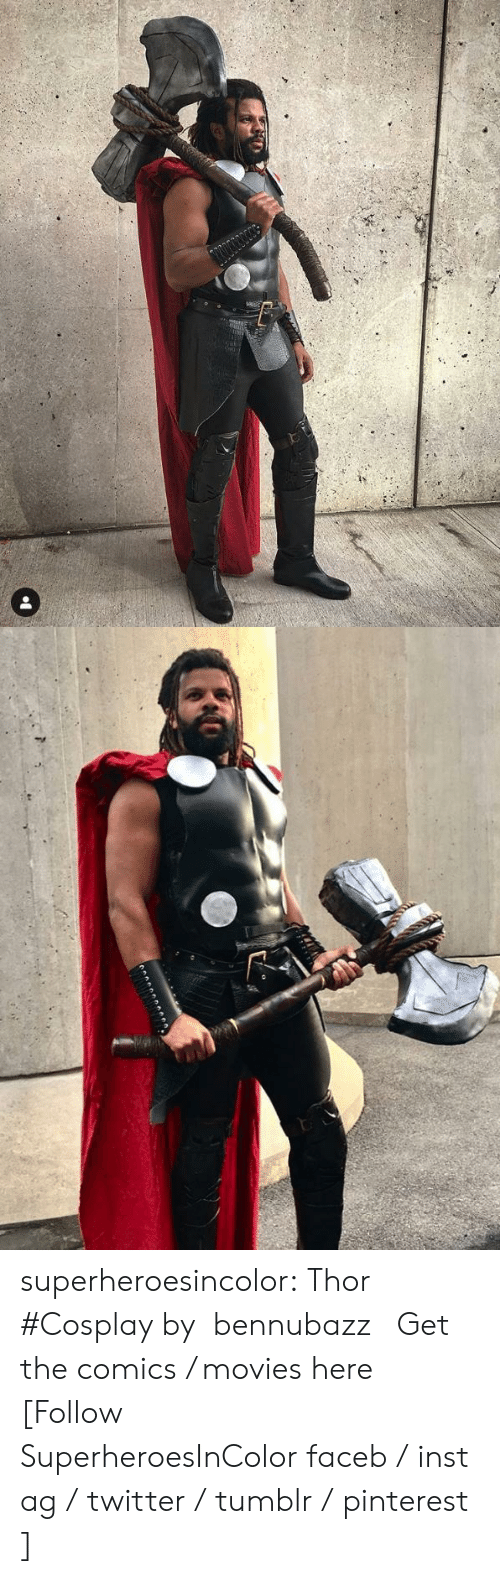 Neue: superheroesincolor: Thor #Cosplay bybennubazz  Get the comics / movieshere [Follow SuperheroesInColorfaceb/instag/twitter/tumblr/pinterest]